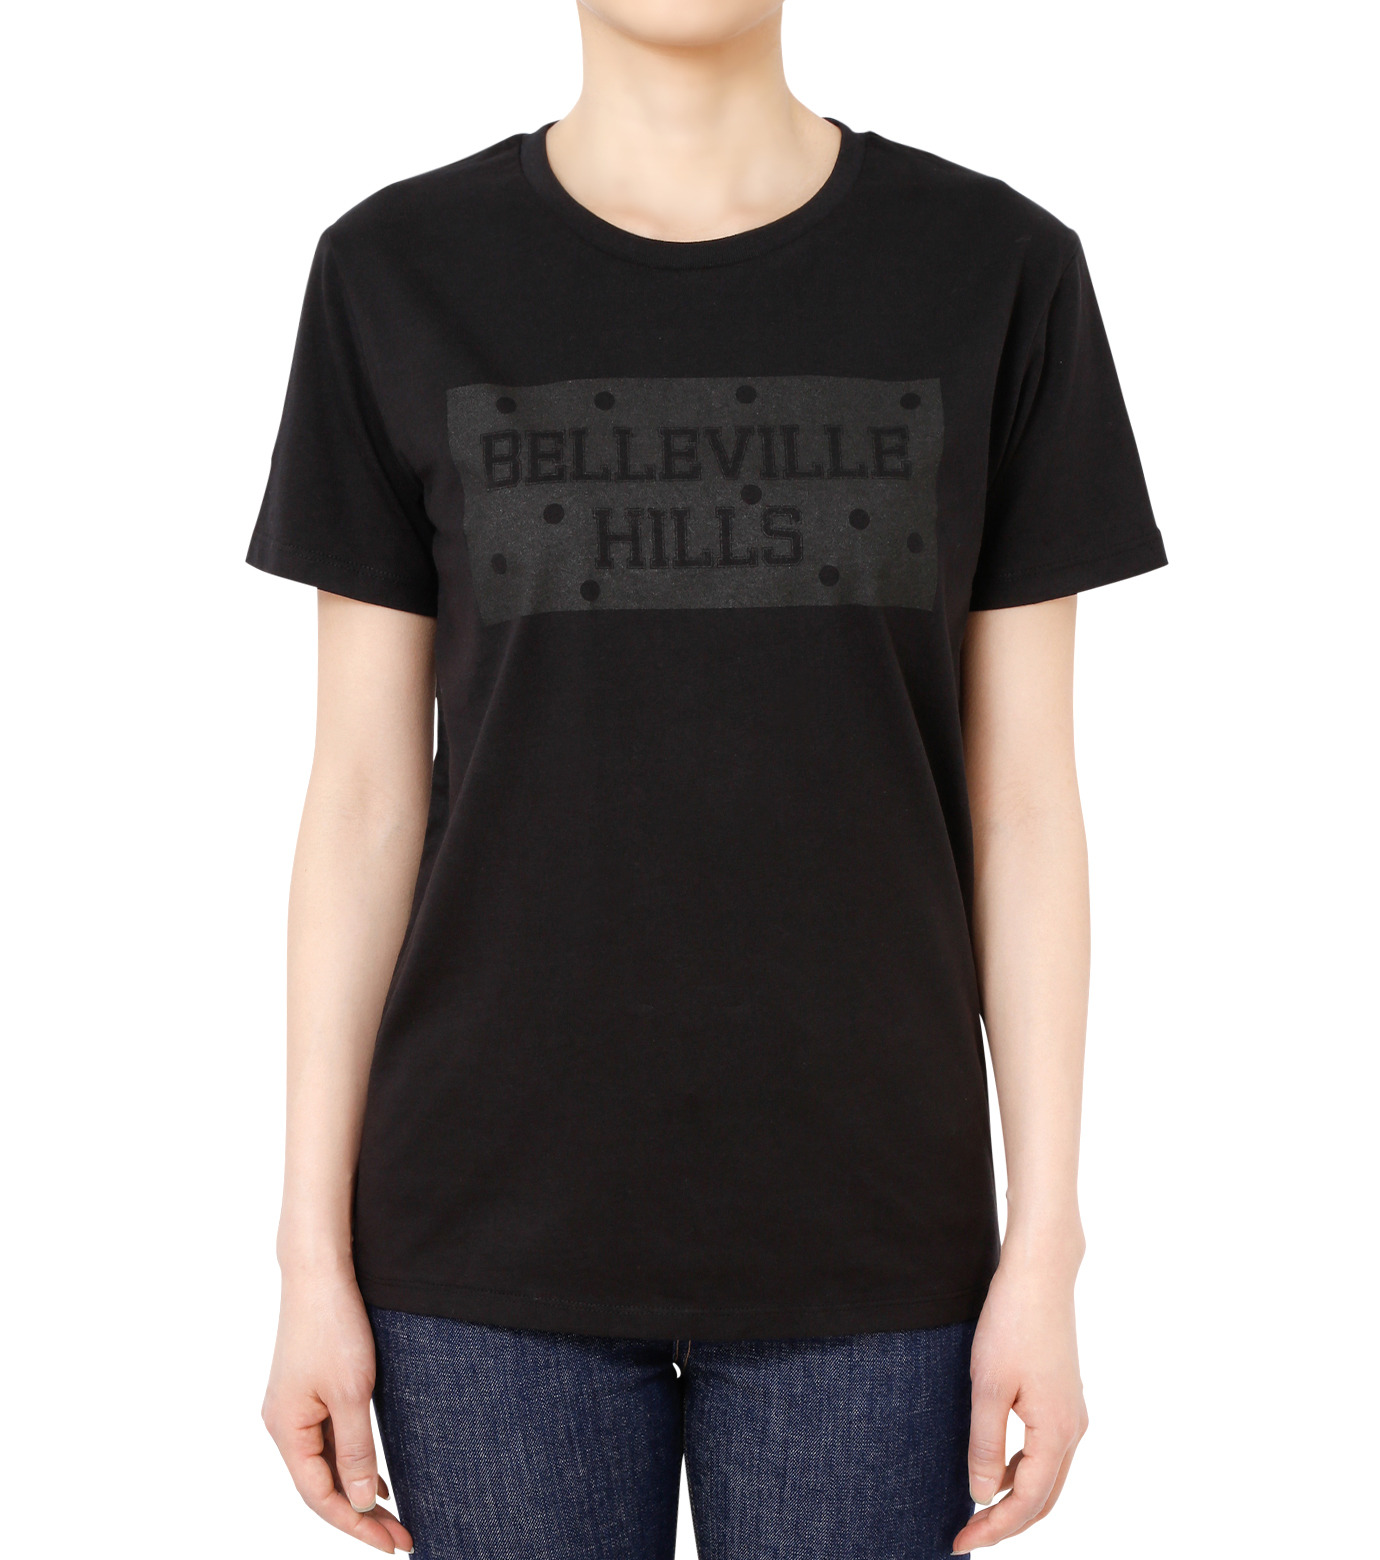 No One(ノーワン)のDots BELLEVILLE HILLS T-shirt-BLACK(カットソー/cut and sewn)-BA525-13 拡大詳細画像1